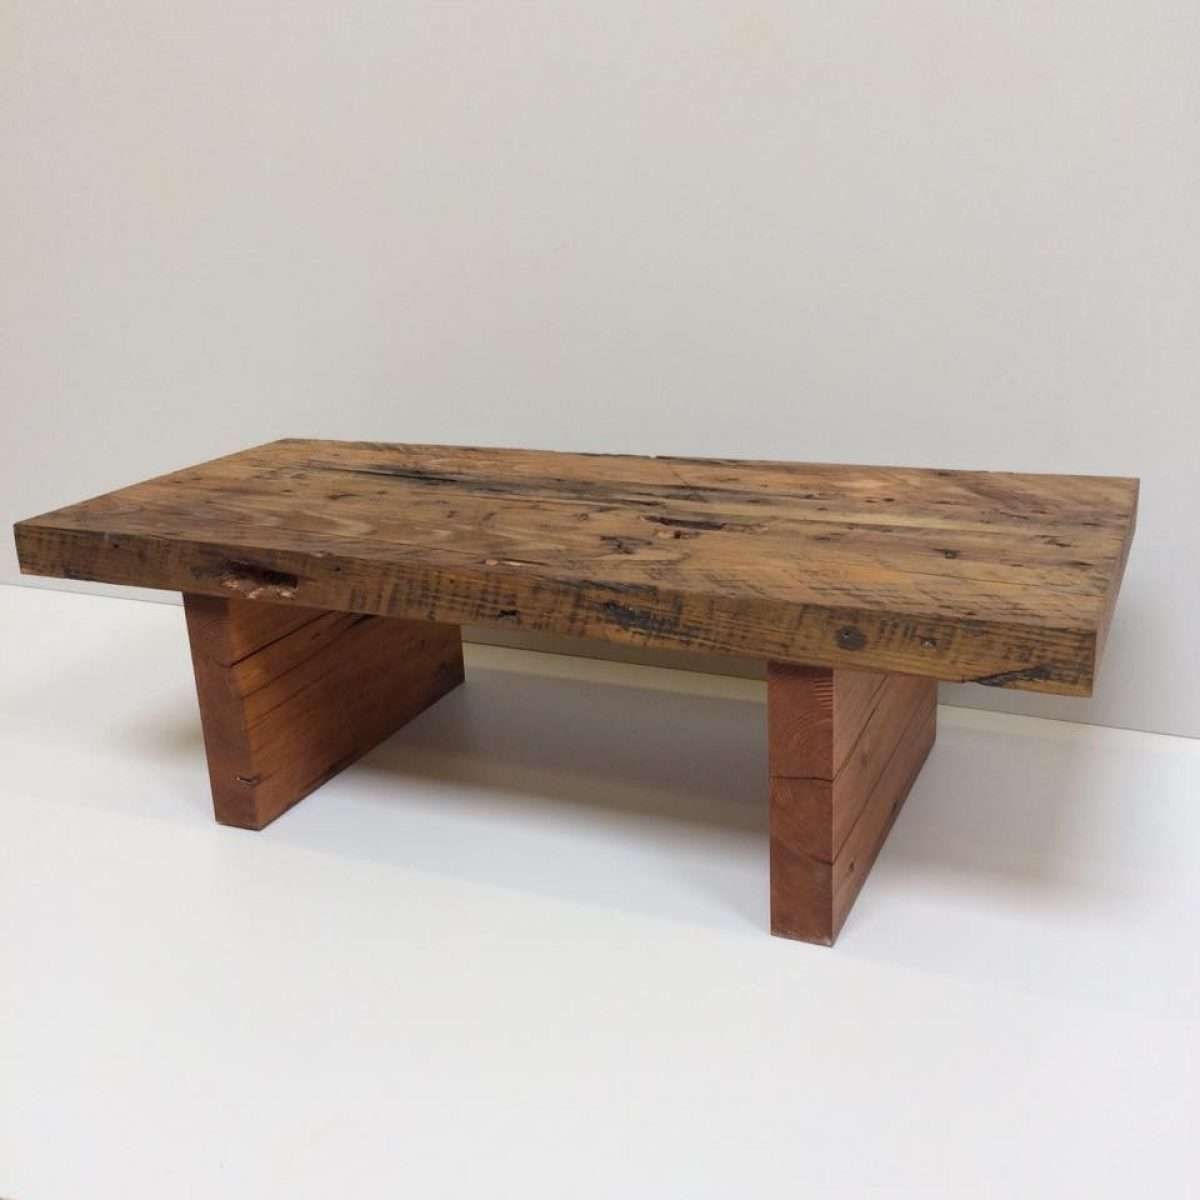 Most Popular Old Pine Coffee Tables Pertaining To Coffee Table Reclaimed Pine Coffee Table Tables Coleman Edwards (View 15 of 20)